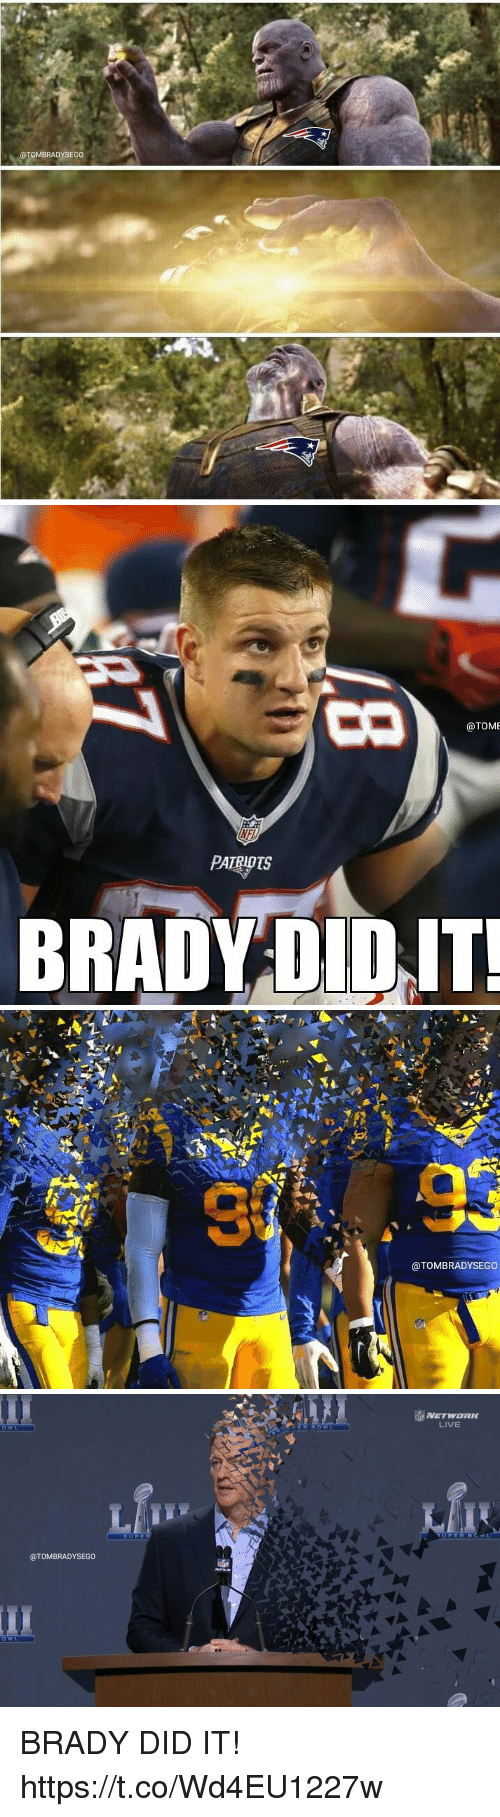 Memes, Live, and Brady: @TOMBRADYSEGO   @TOME  BRADV DID IT   @TOMBRADYSEGO   NETWORK  LIVE  OWL  SUPER  UPERBCWL  @TOMBRADYSEGO BRADY DID IT! https://t.co/Wd4EU1227w